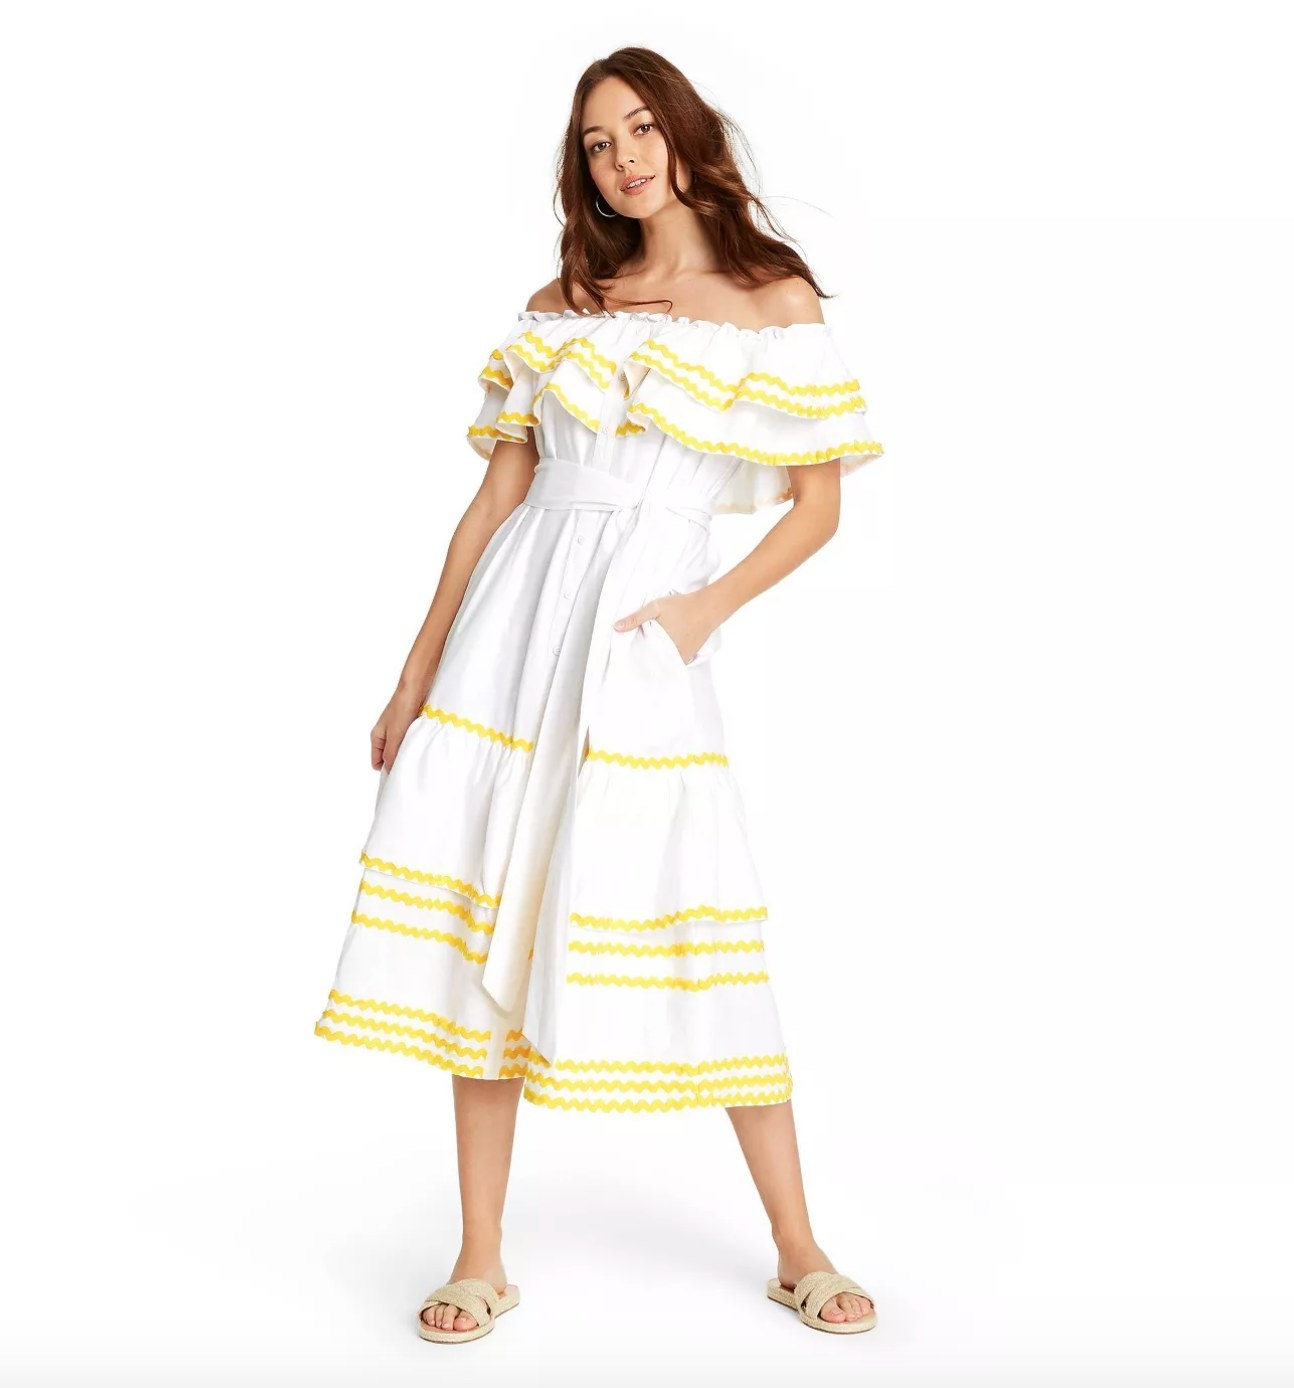 Model wearing the white dress with yellow trim